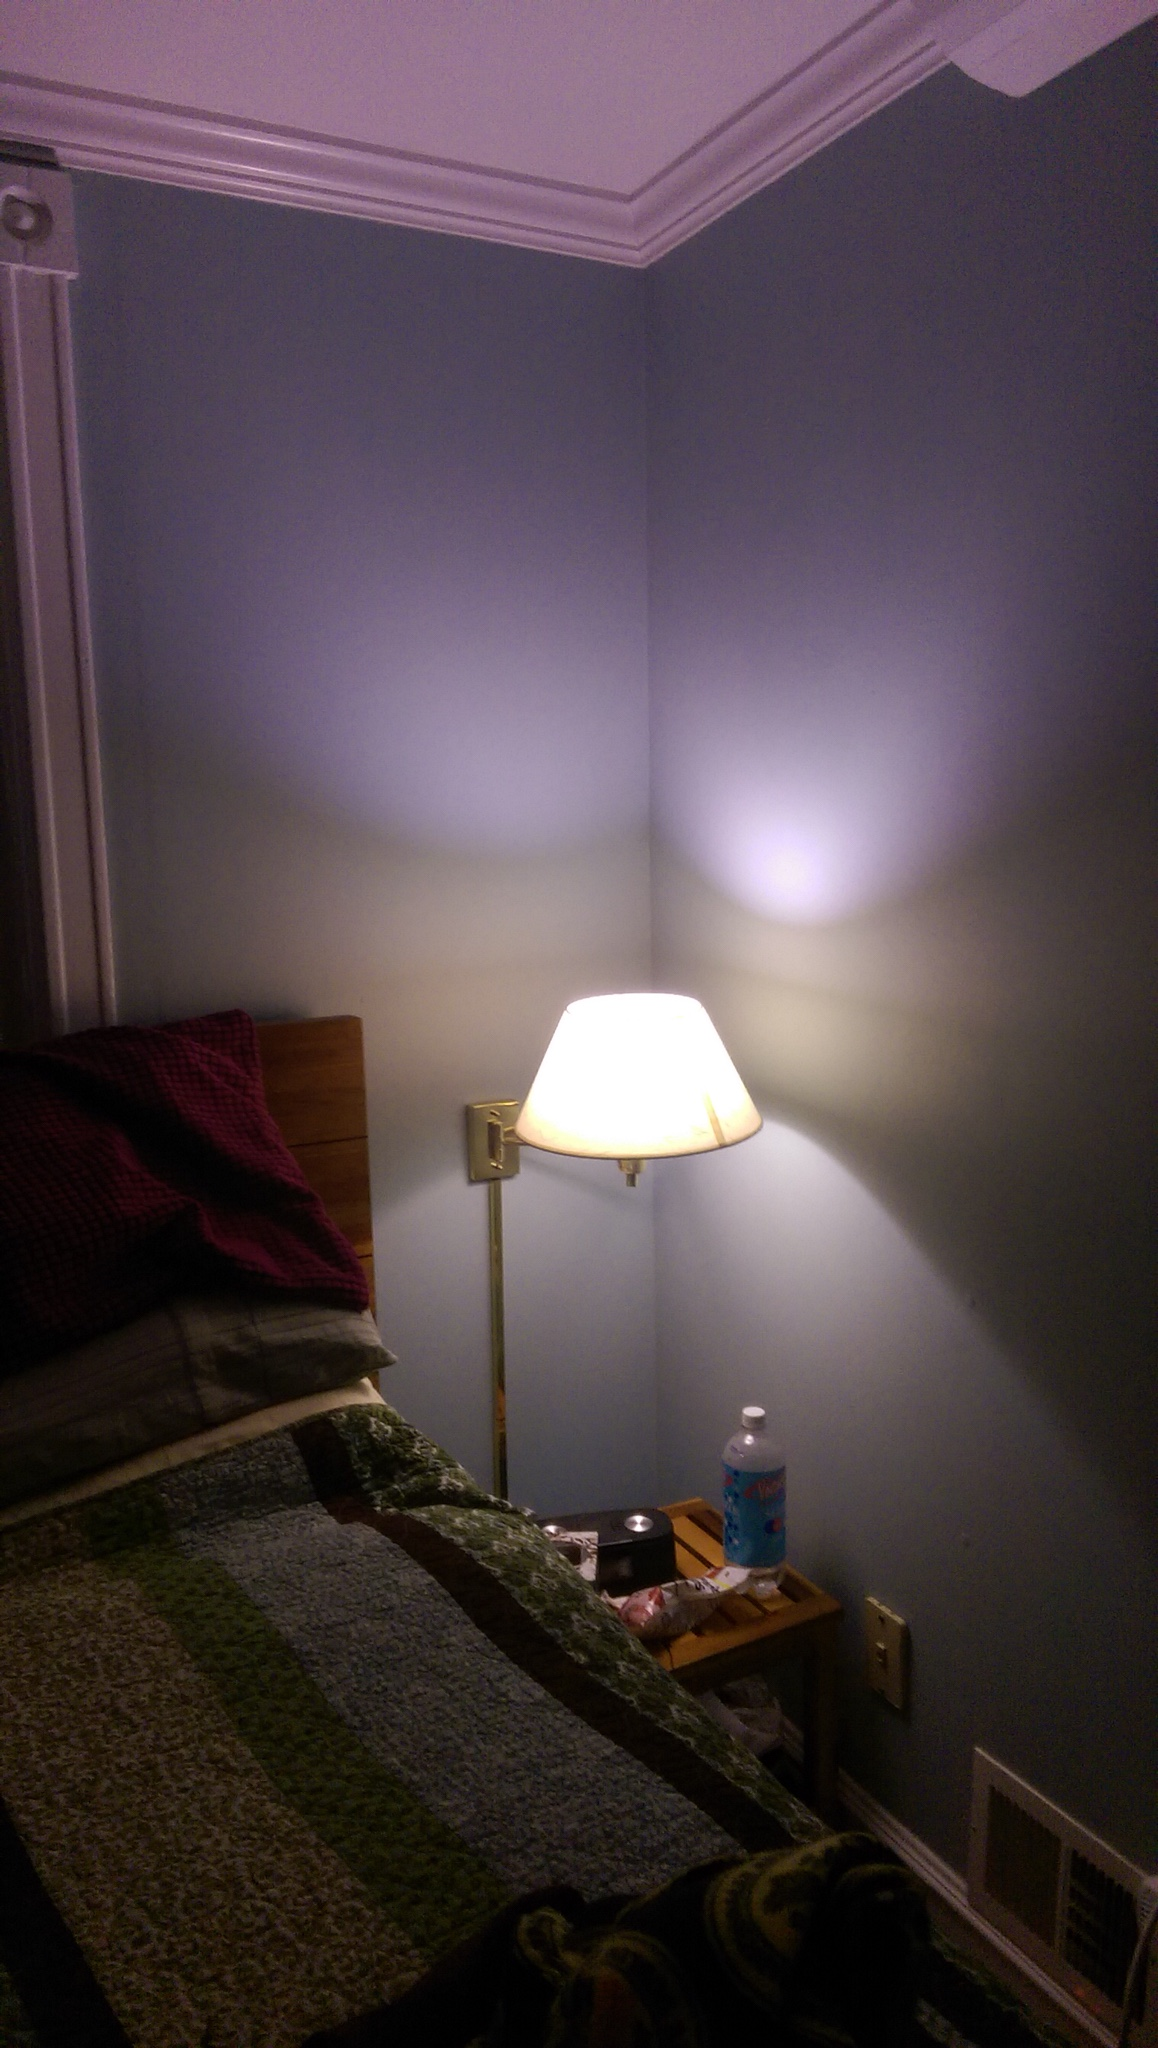 Oort LED Review: Connected Mood Lighting with Benefits